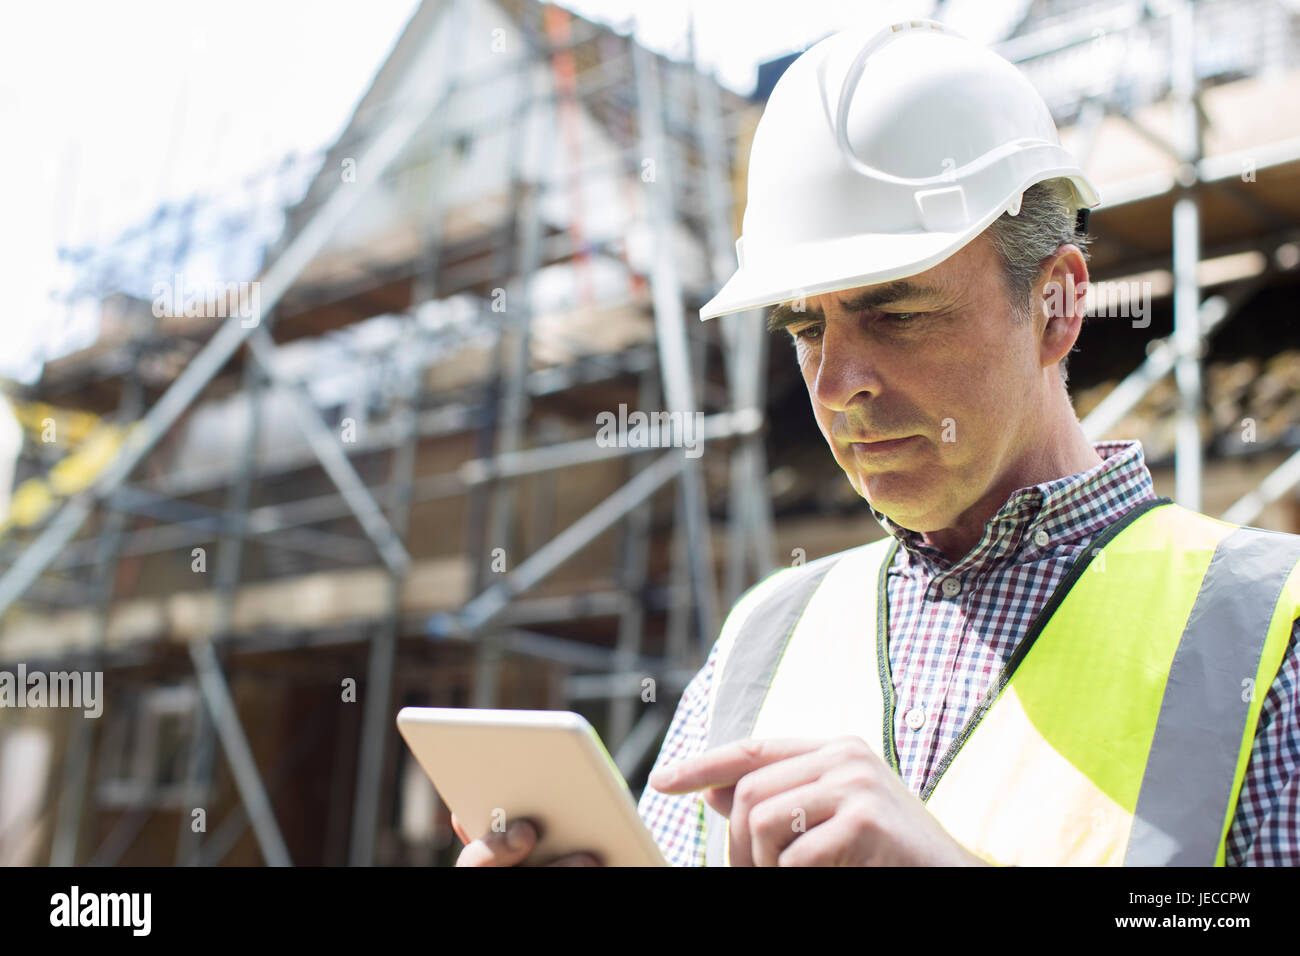 Architecte sur chantier Using Digital Tablet Photo Stock